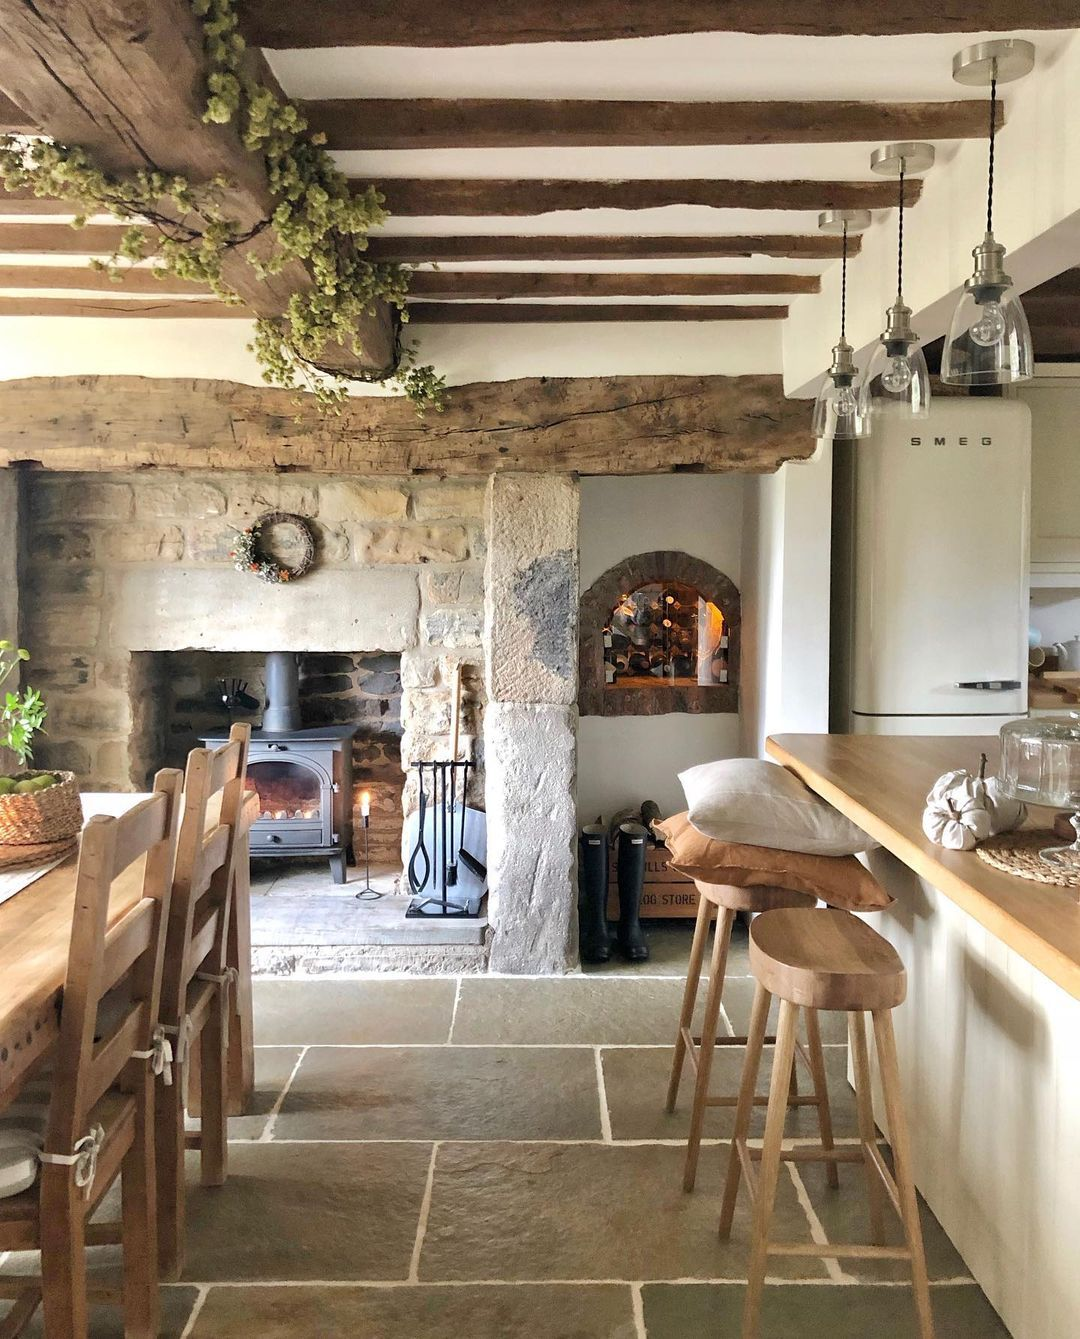 English Country Home Charm - Holzbalken und Steinmauern über @life_at_the_mews